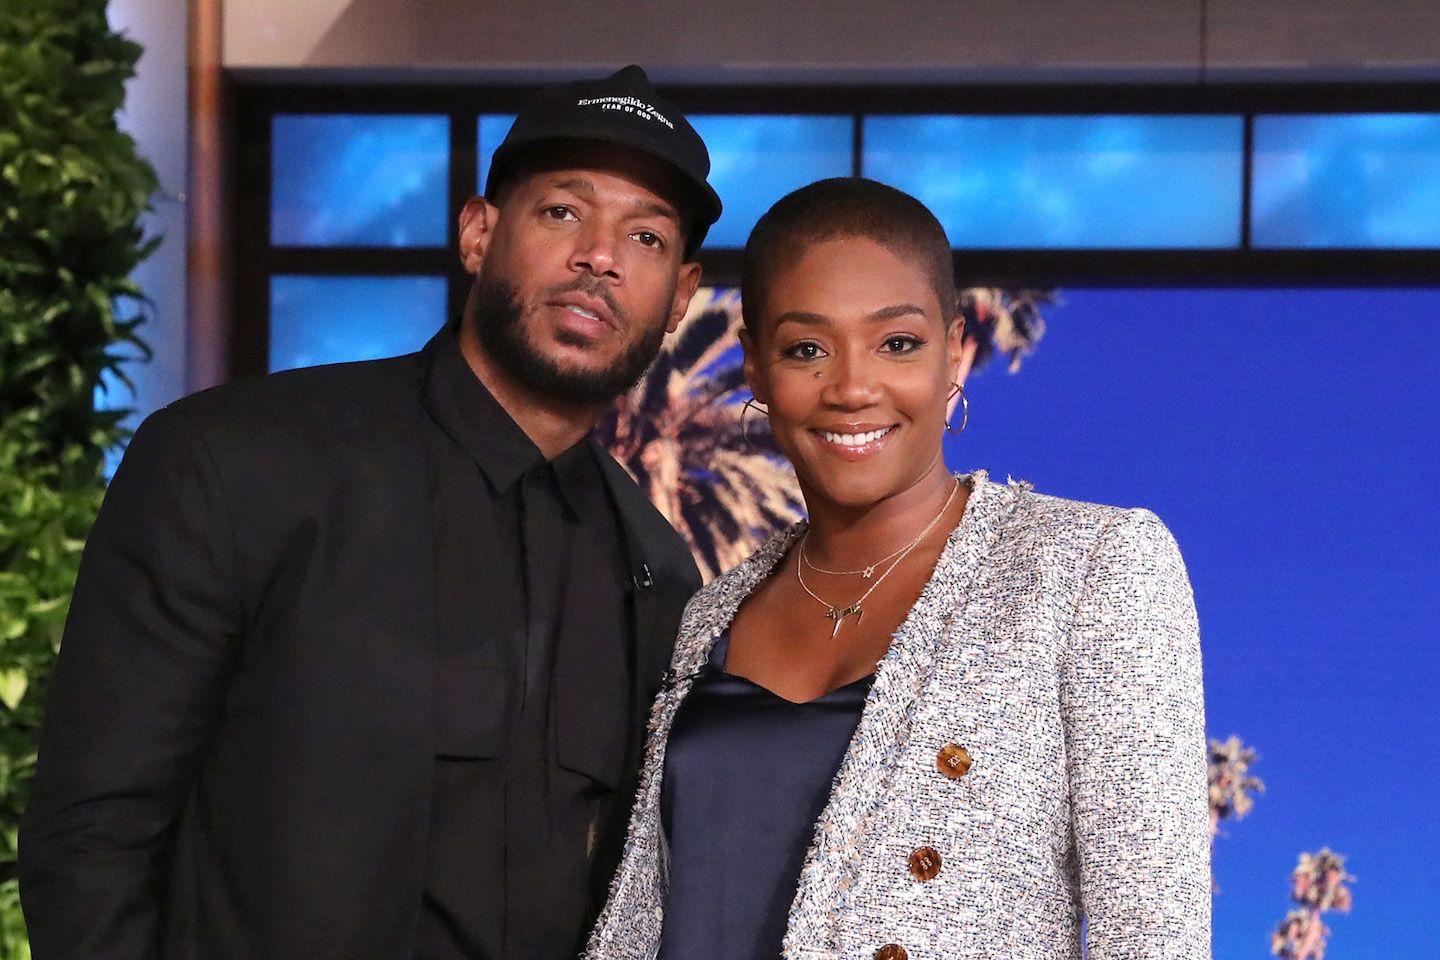 Marlon Wayans Defends Never Casting Tiffany Haddish For Comedies: 'You Just be Inappropriate'